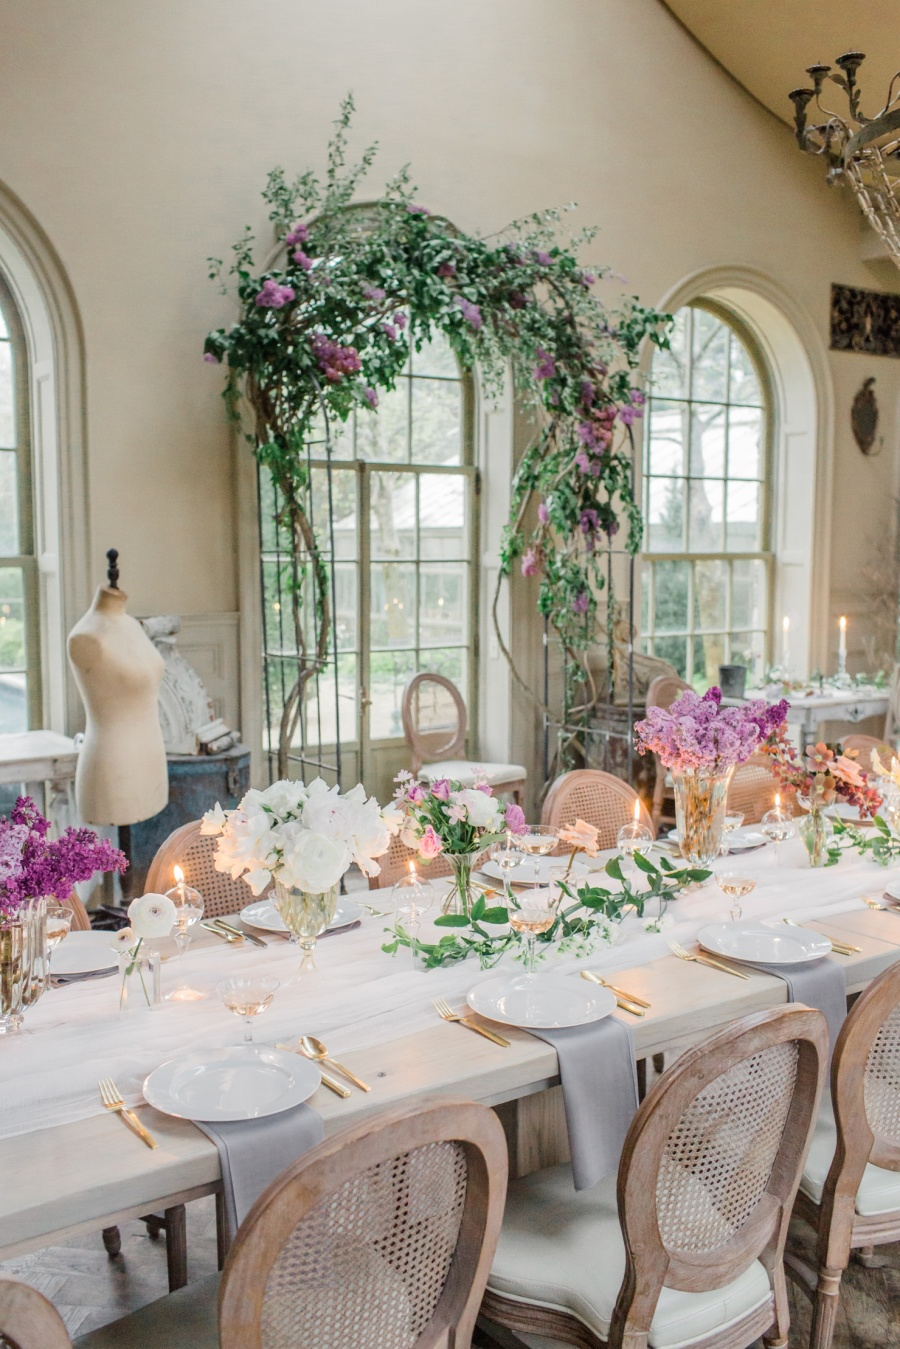 The wedding table was decorated French style, with white and purple blooms, an airy table runner and neutral napkins